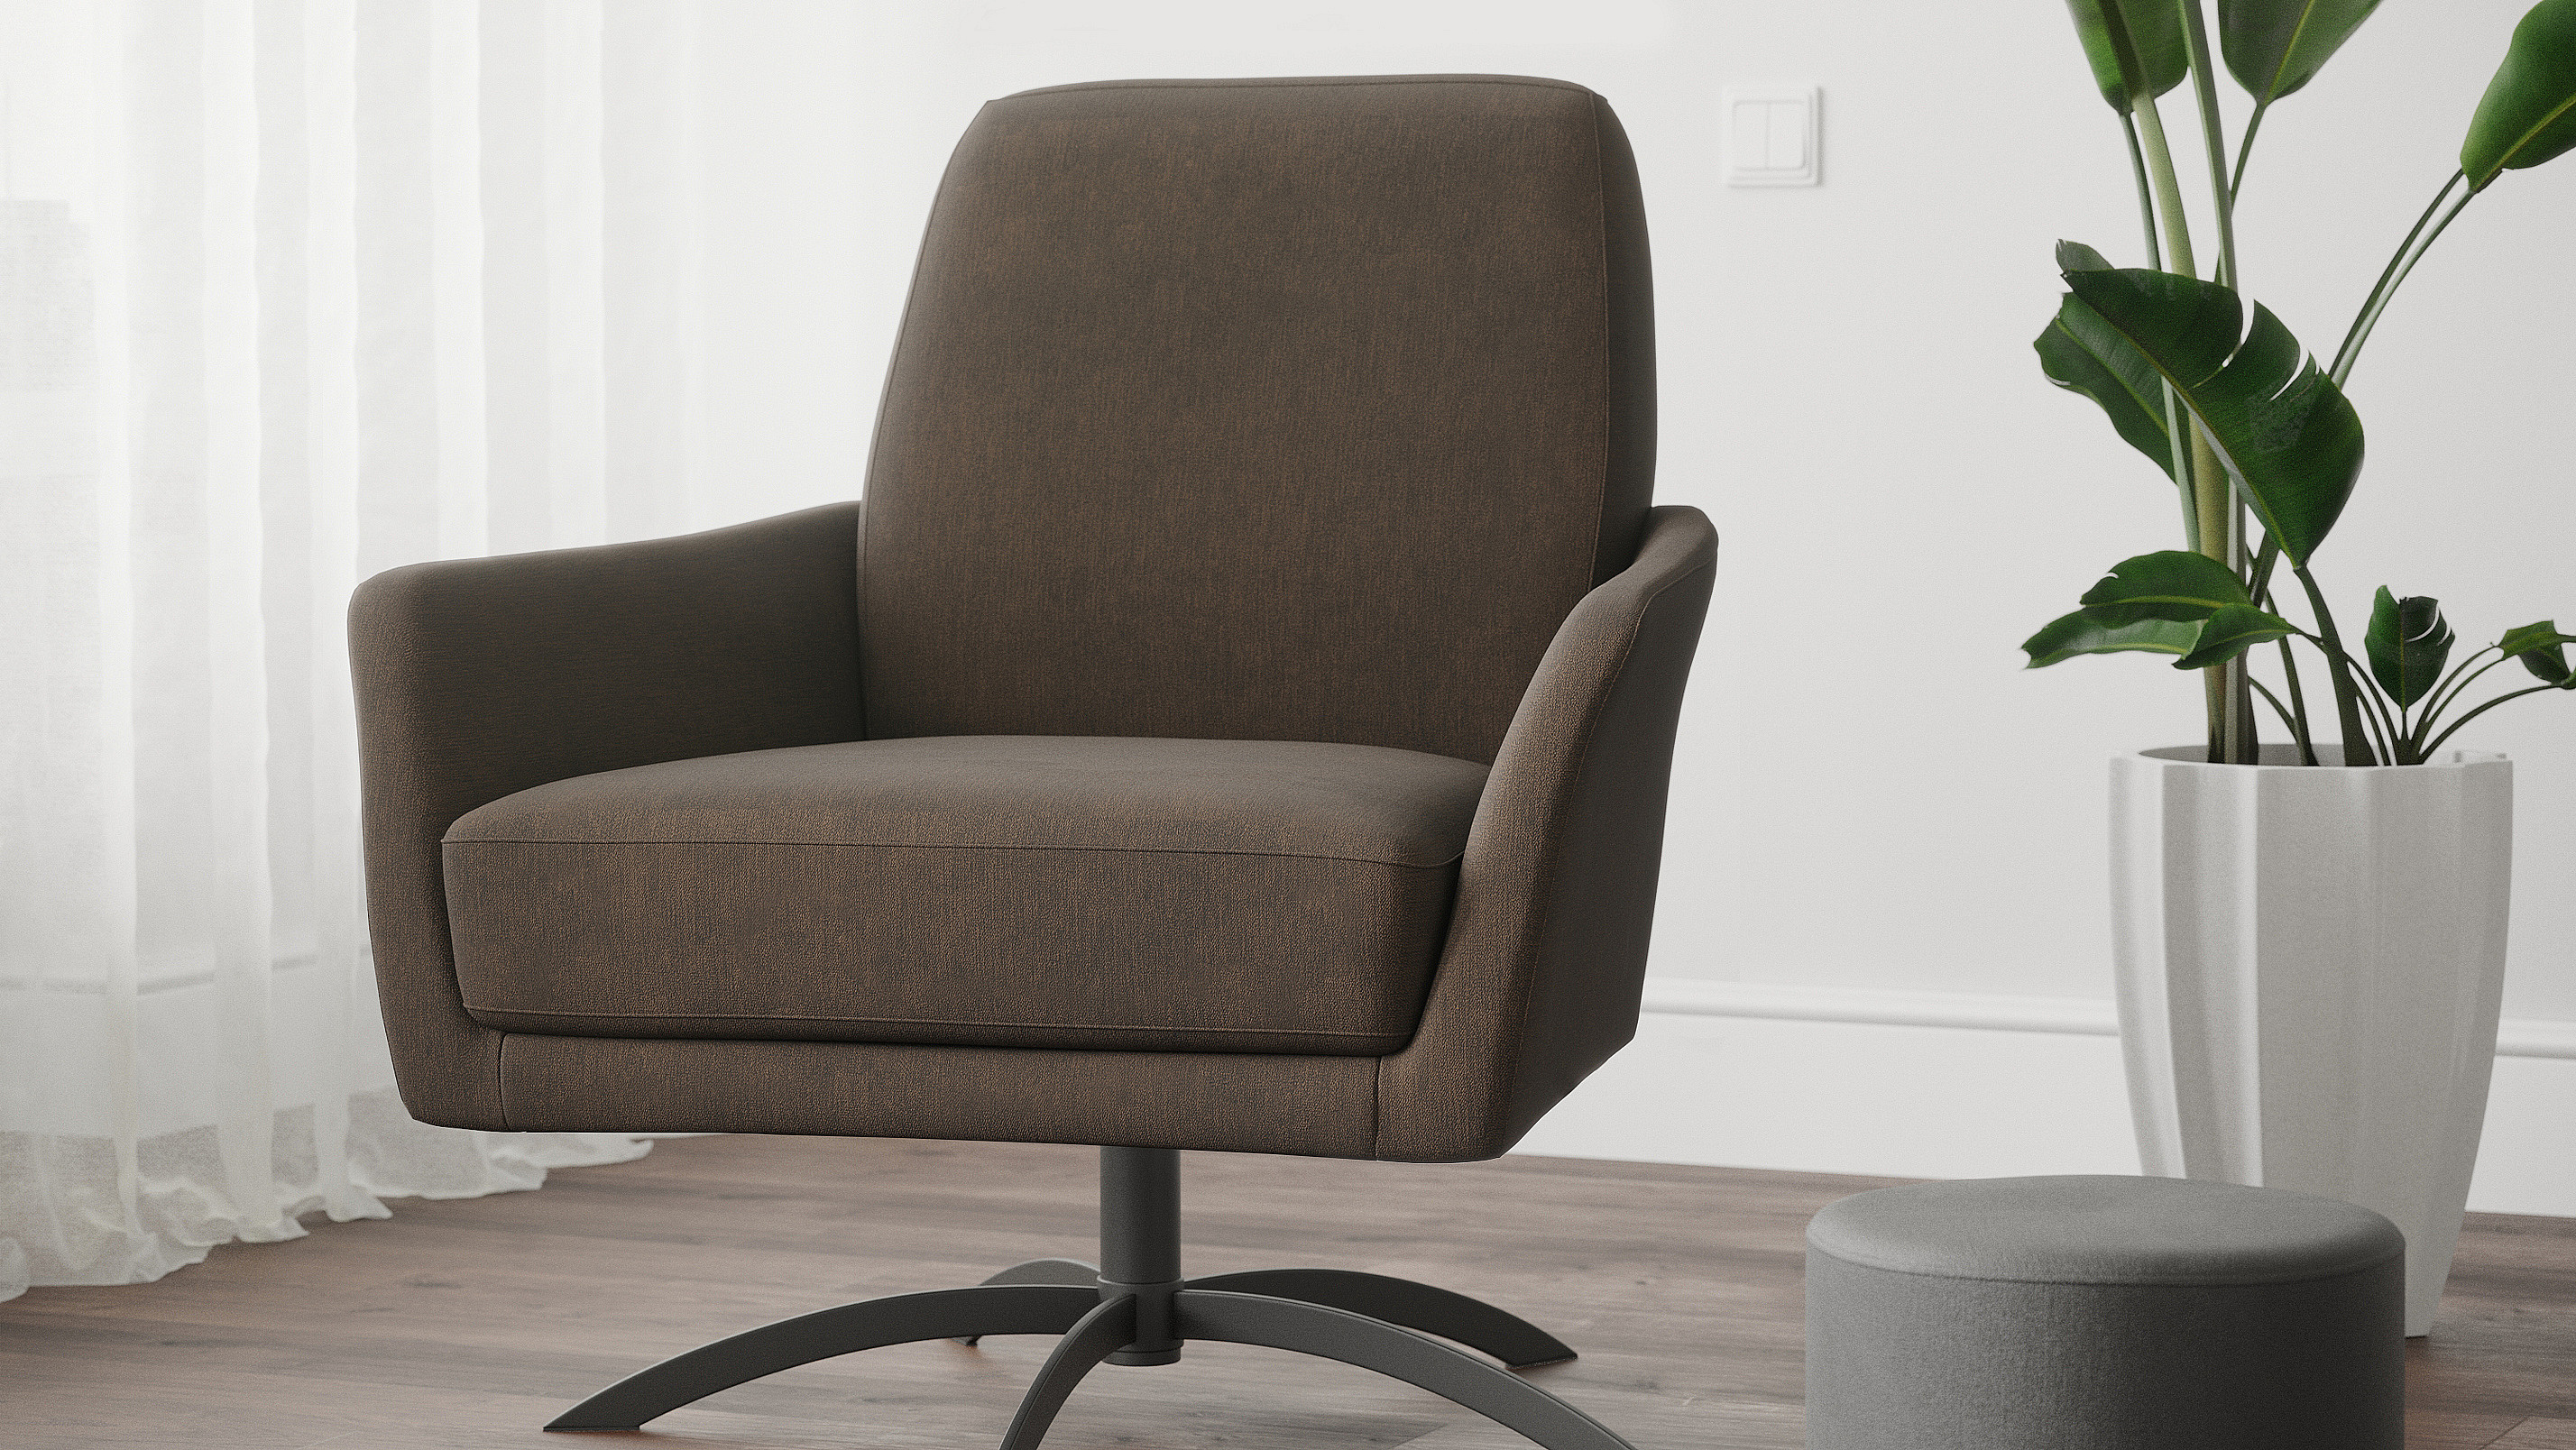 Interior visualization of the lounge-chair called Etro.